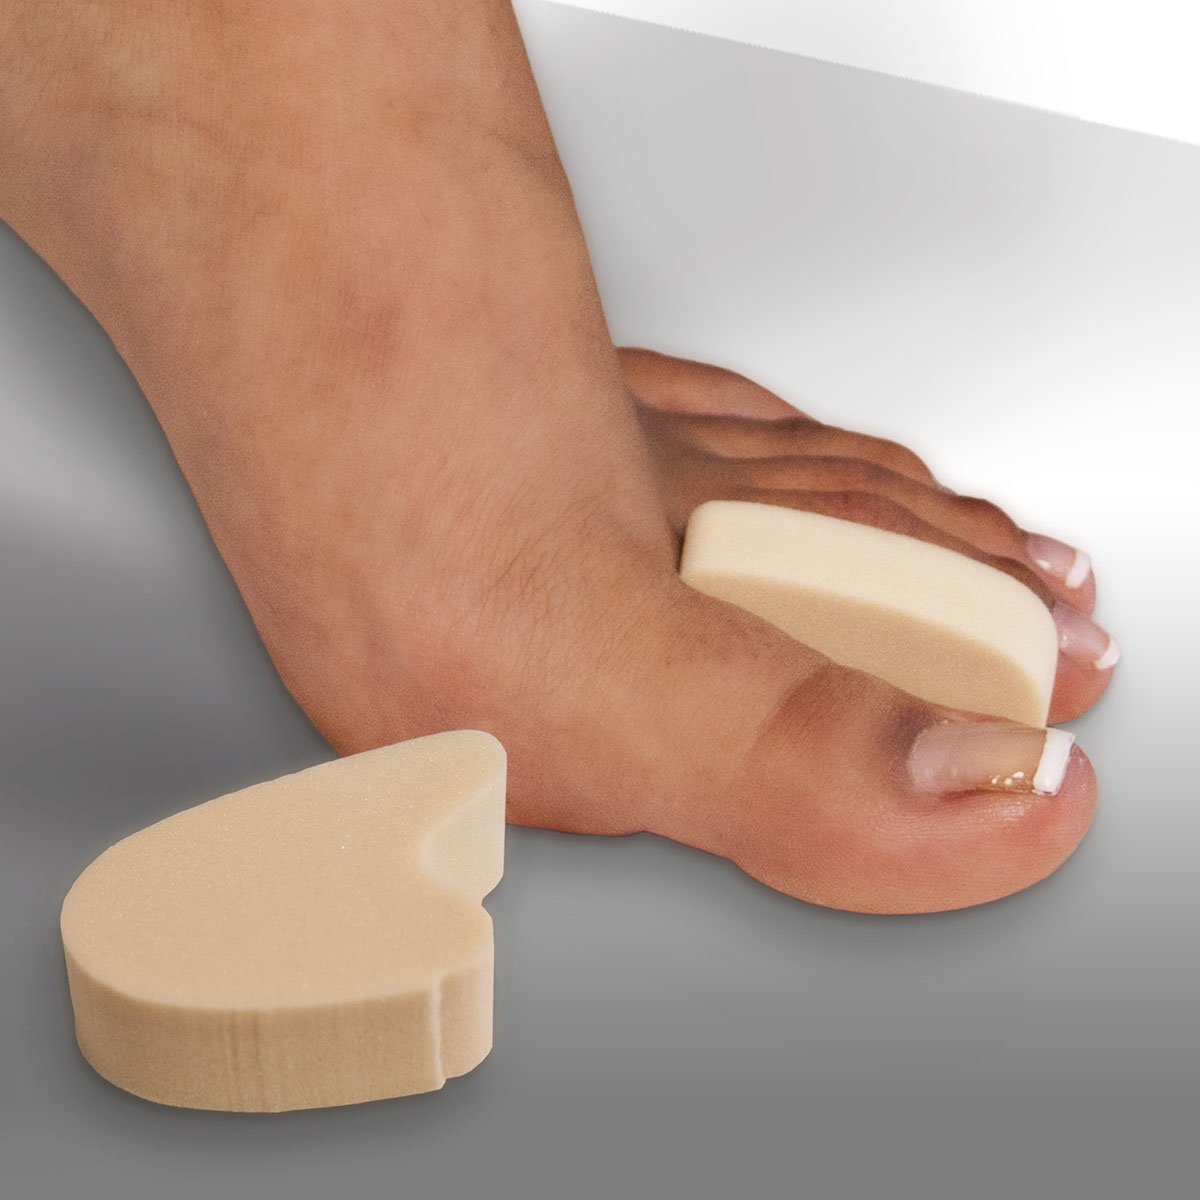 Toe Spacer - Large/Firm